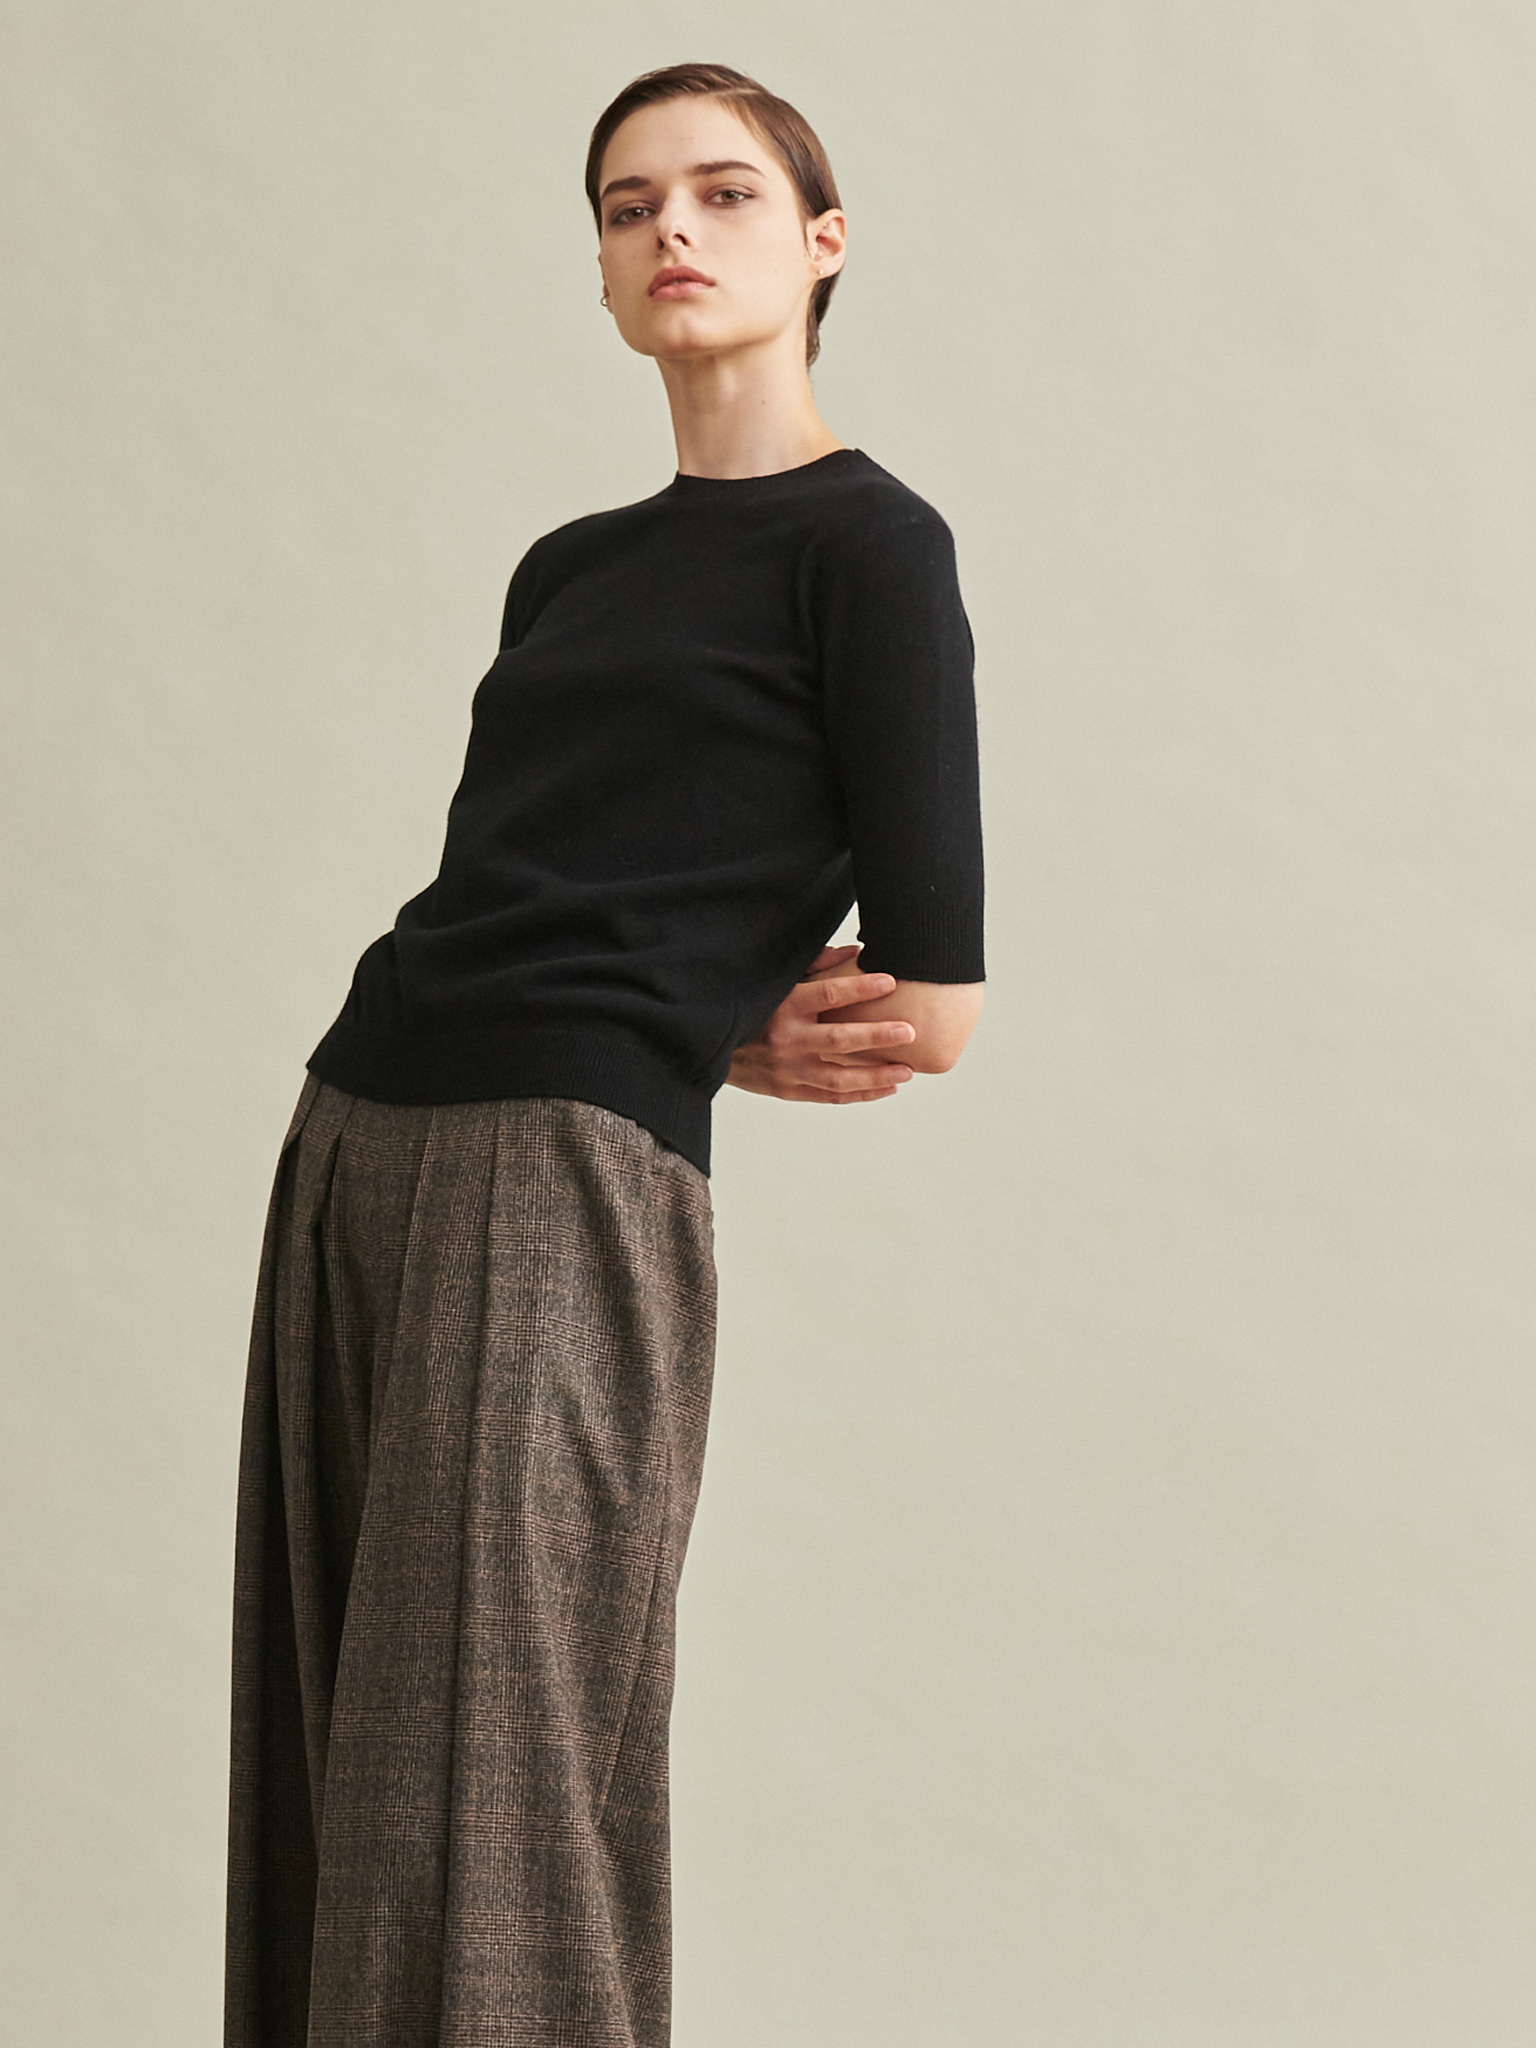 Todd&Duncan Cashmere 100% Short Sleeve Knit Top